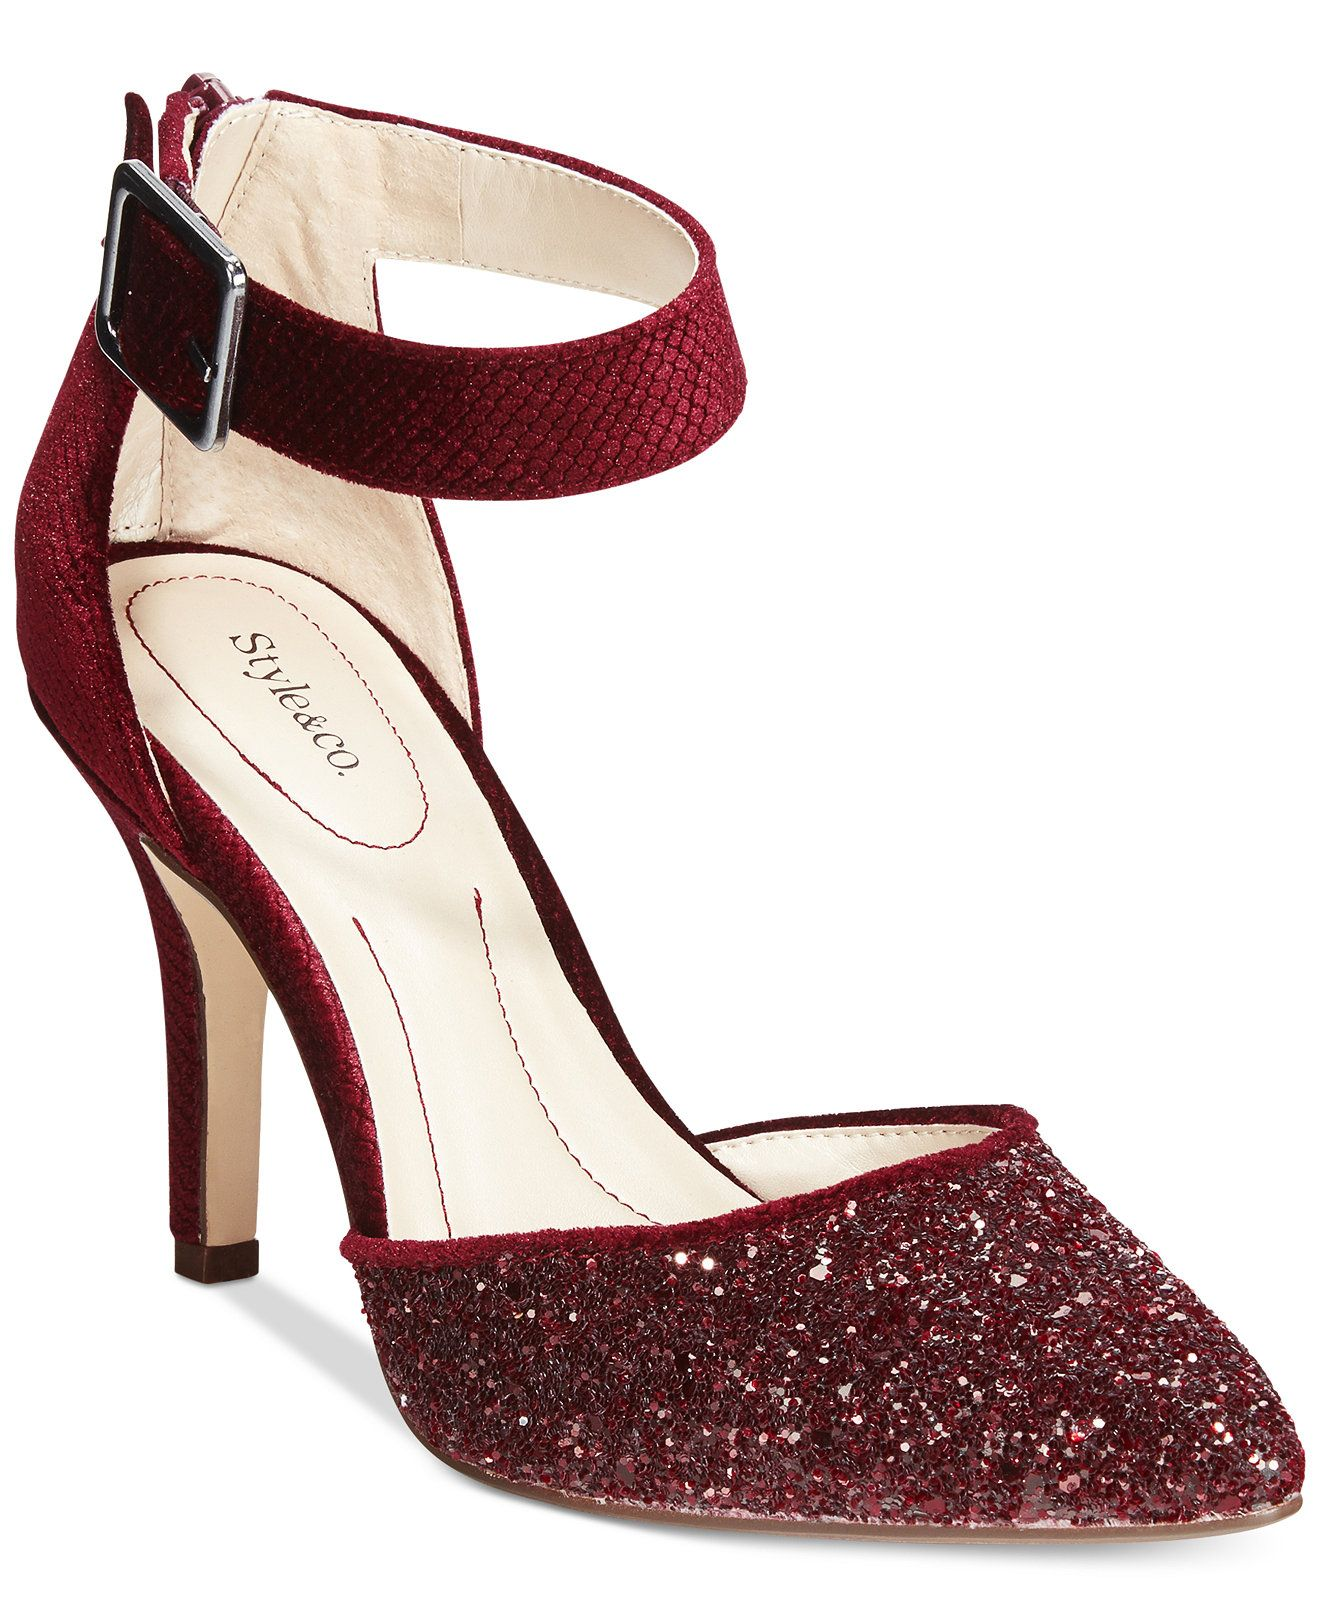 2c97e8583e Galaxy2 Evening Pumps, Only at Macy's - Sale & Clearance - Shoes - Macy's